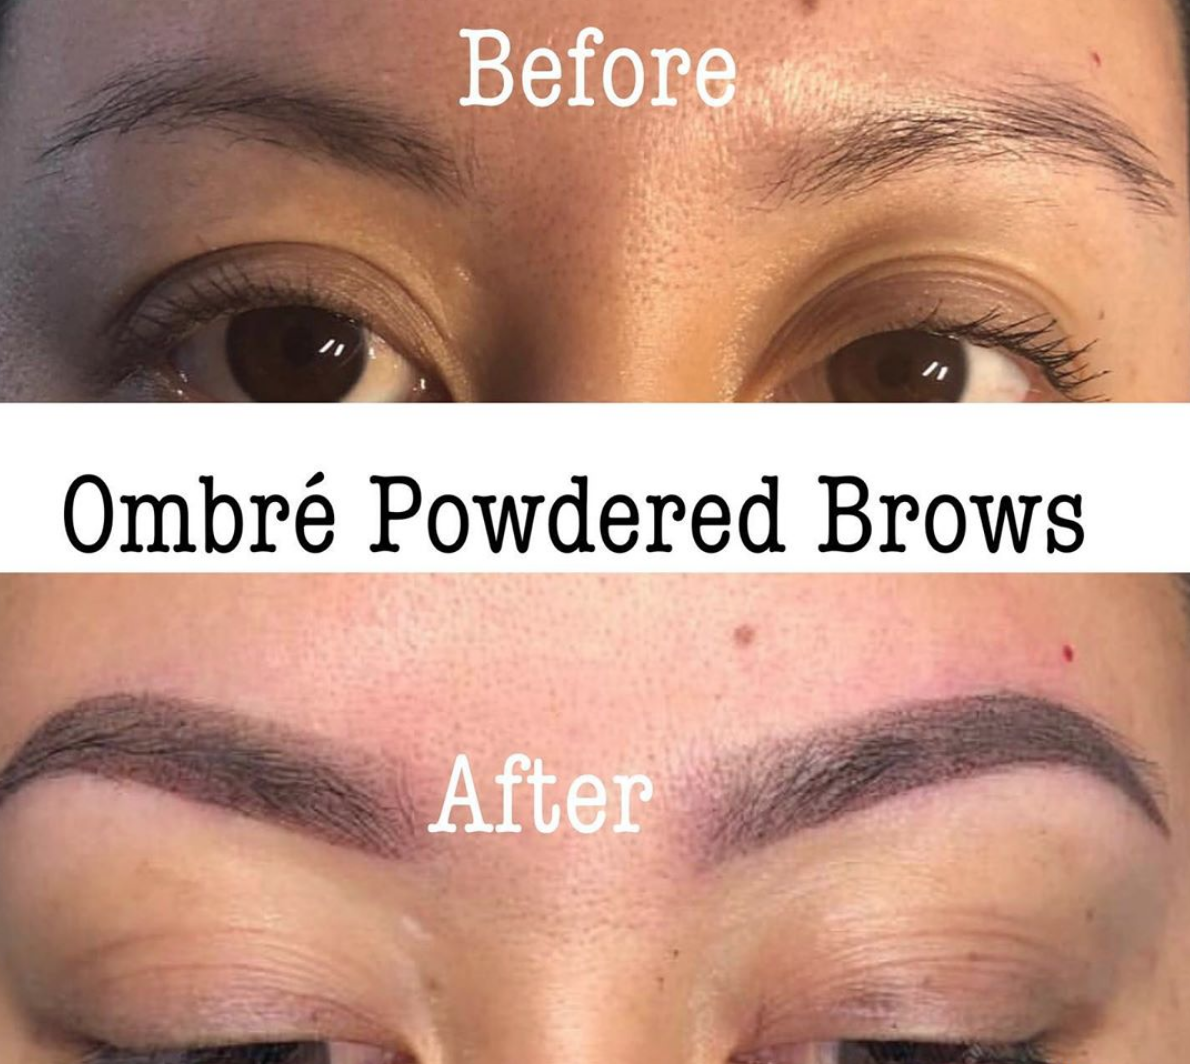 ombre-powdered-brows-sugarlillies